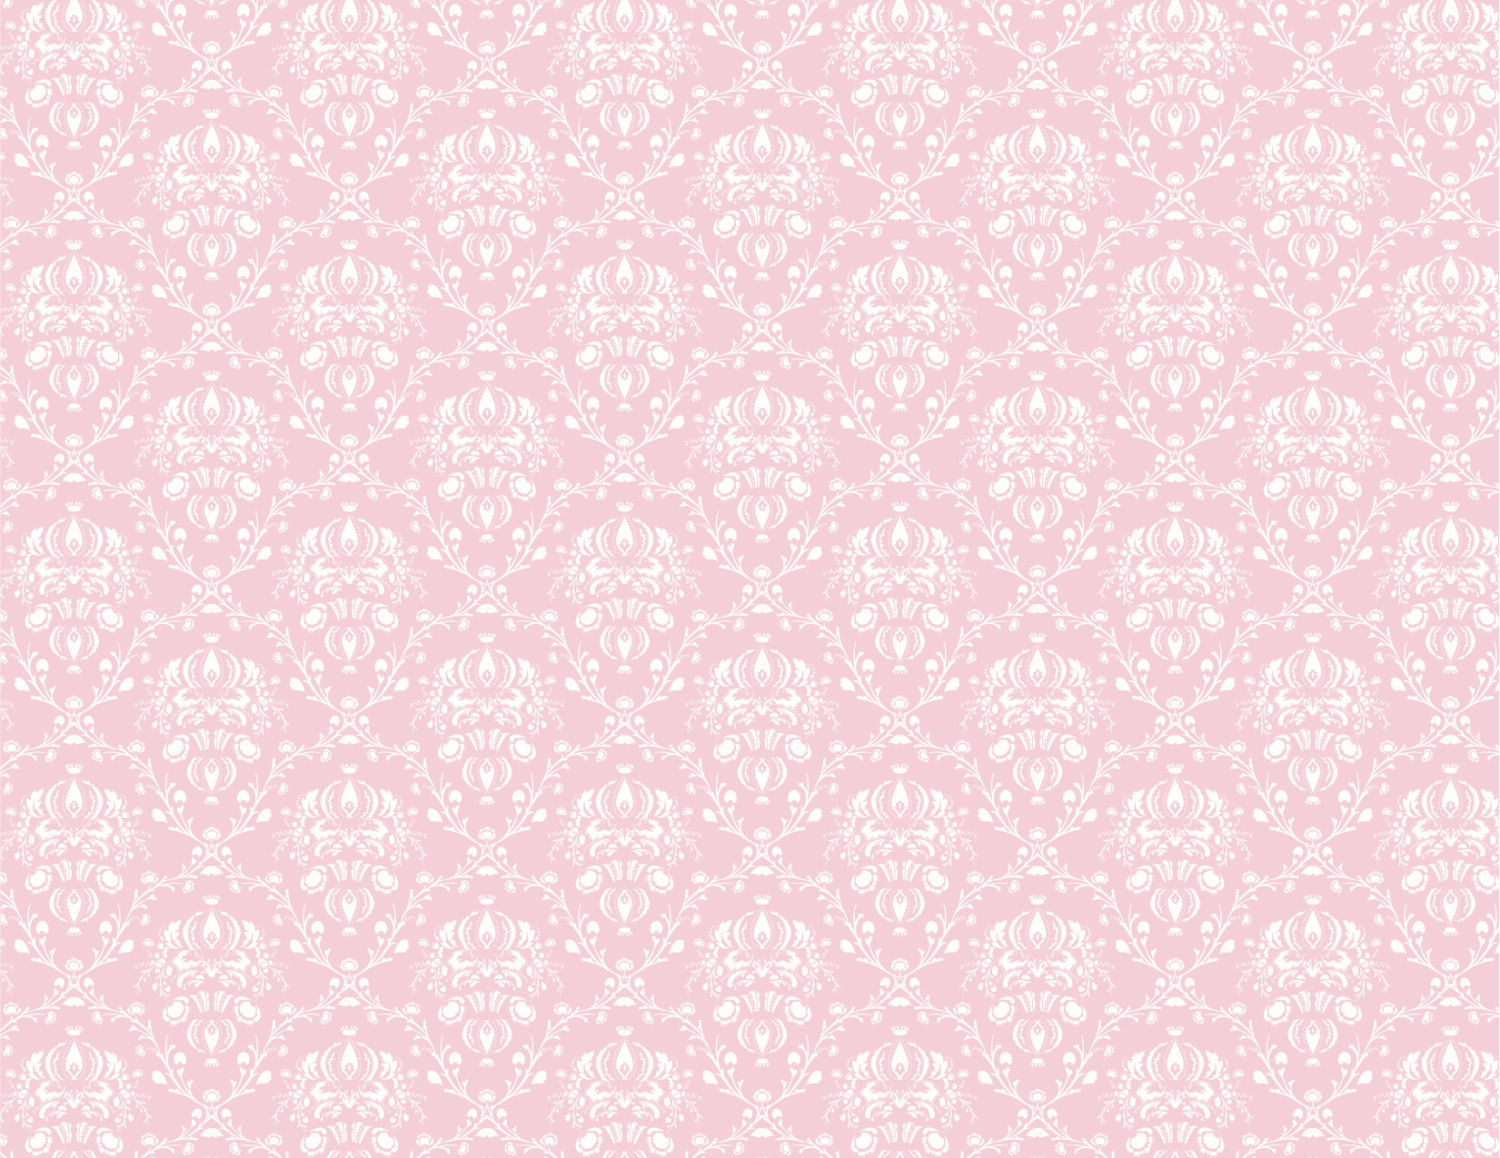 Pink White and Ivory Damask Background Sheets by APartyStudio 1500x1158